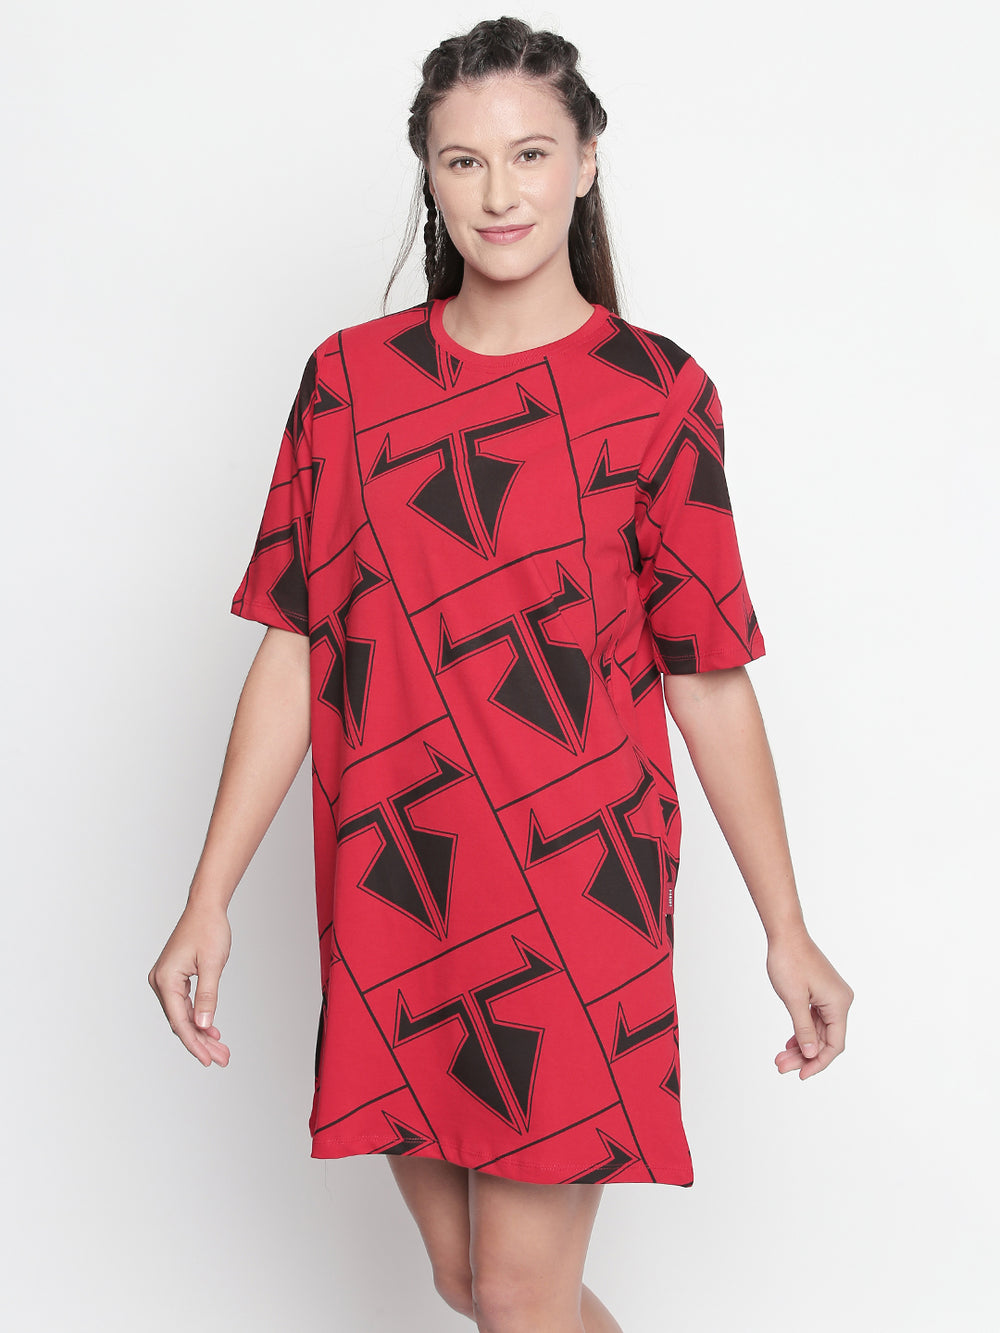 Red Disrupt Logo Graphic Print Dress